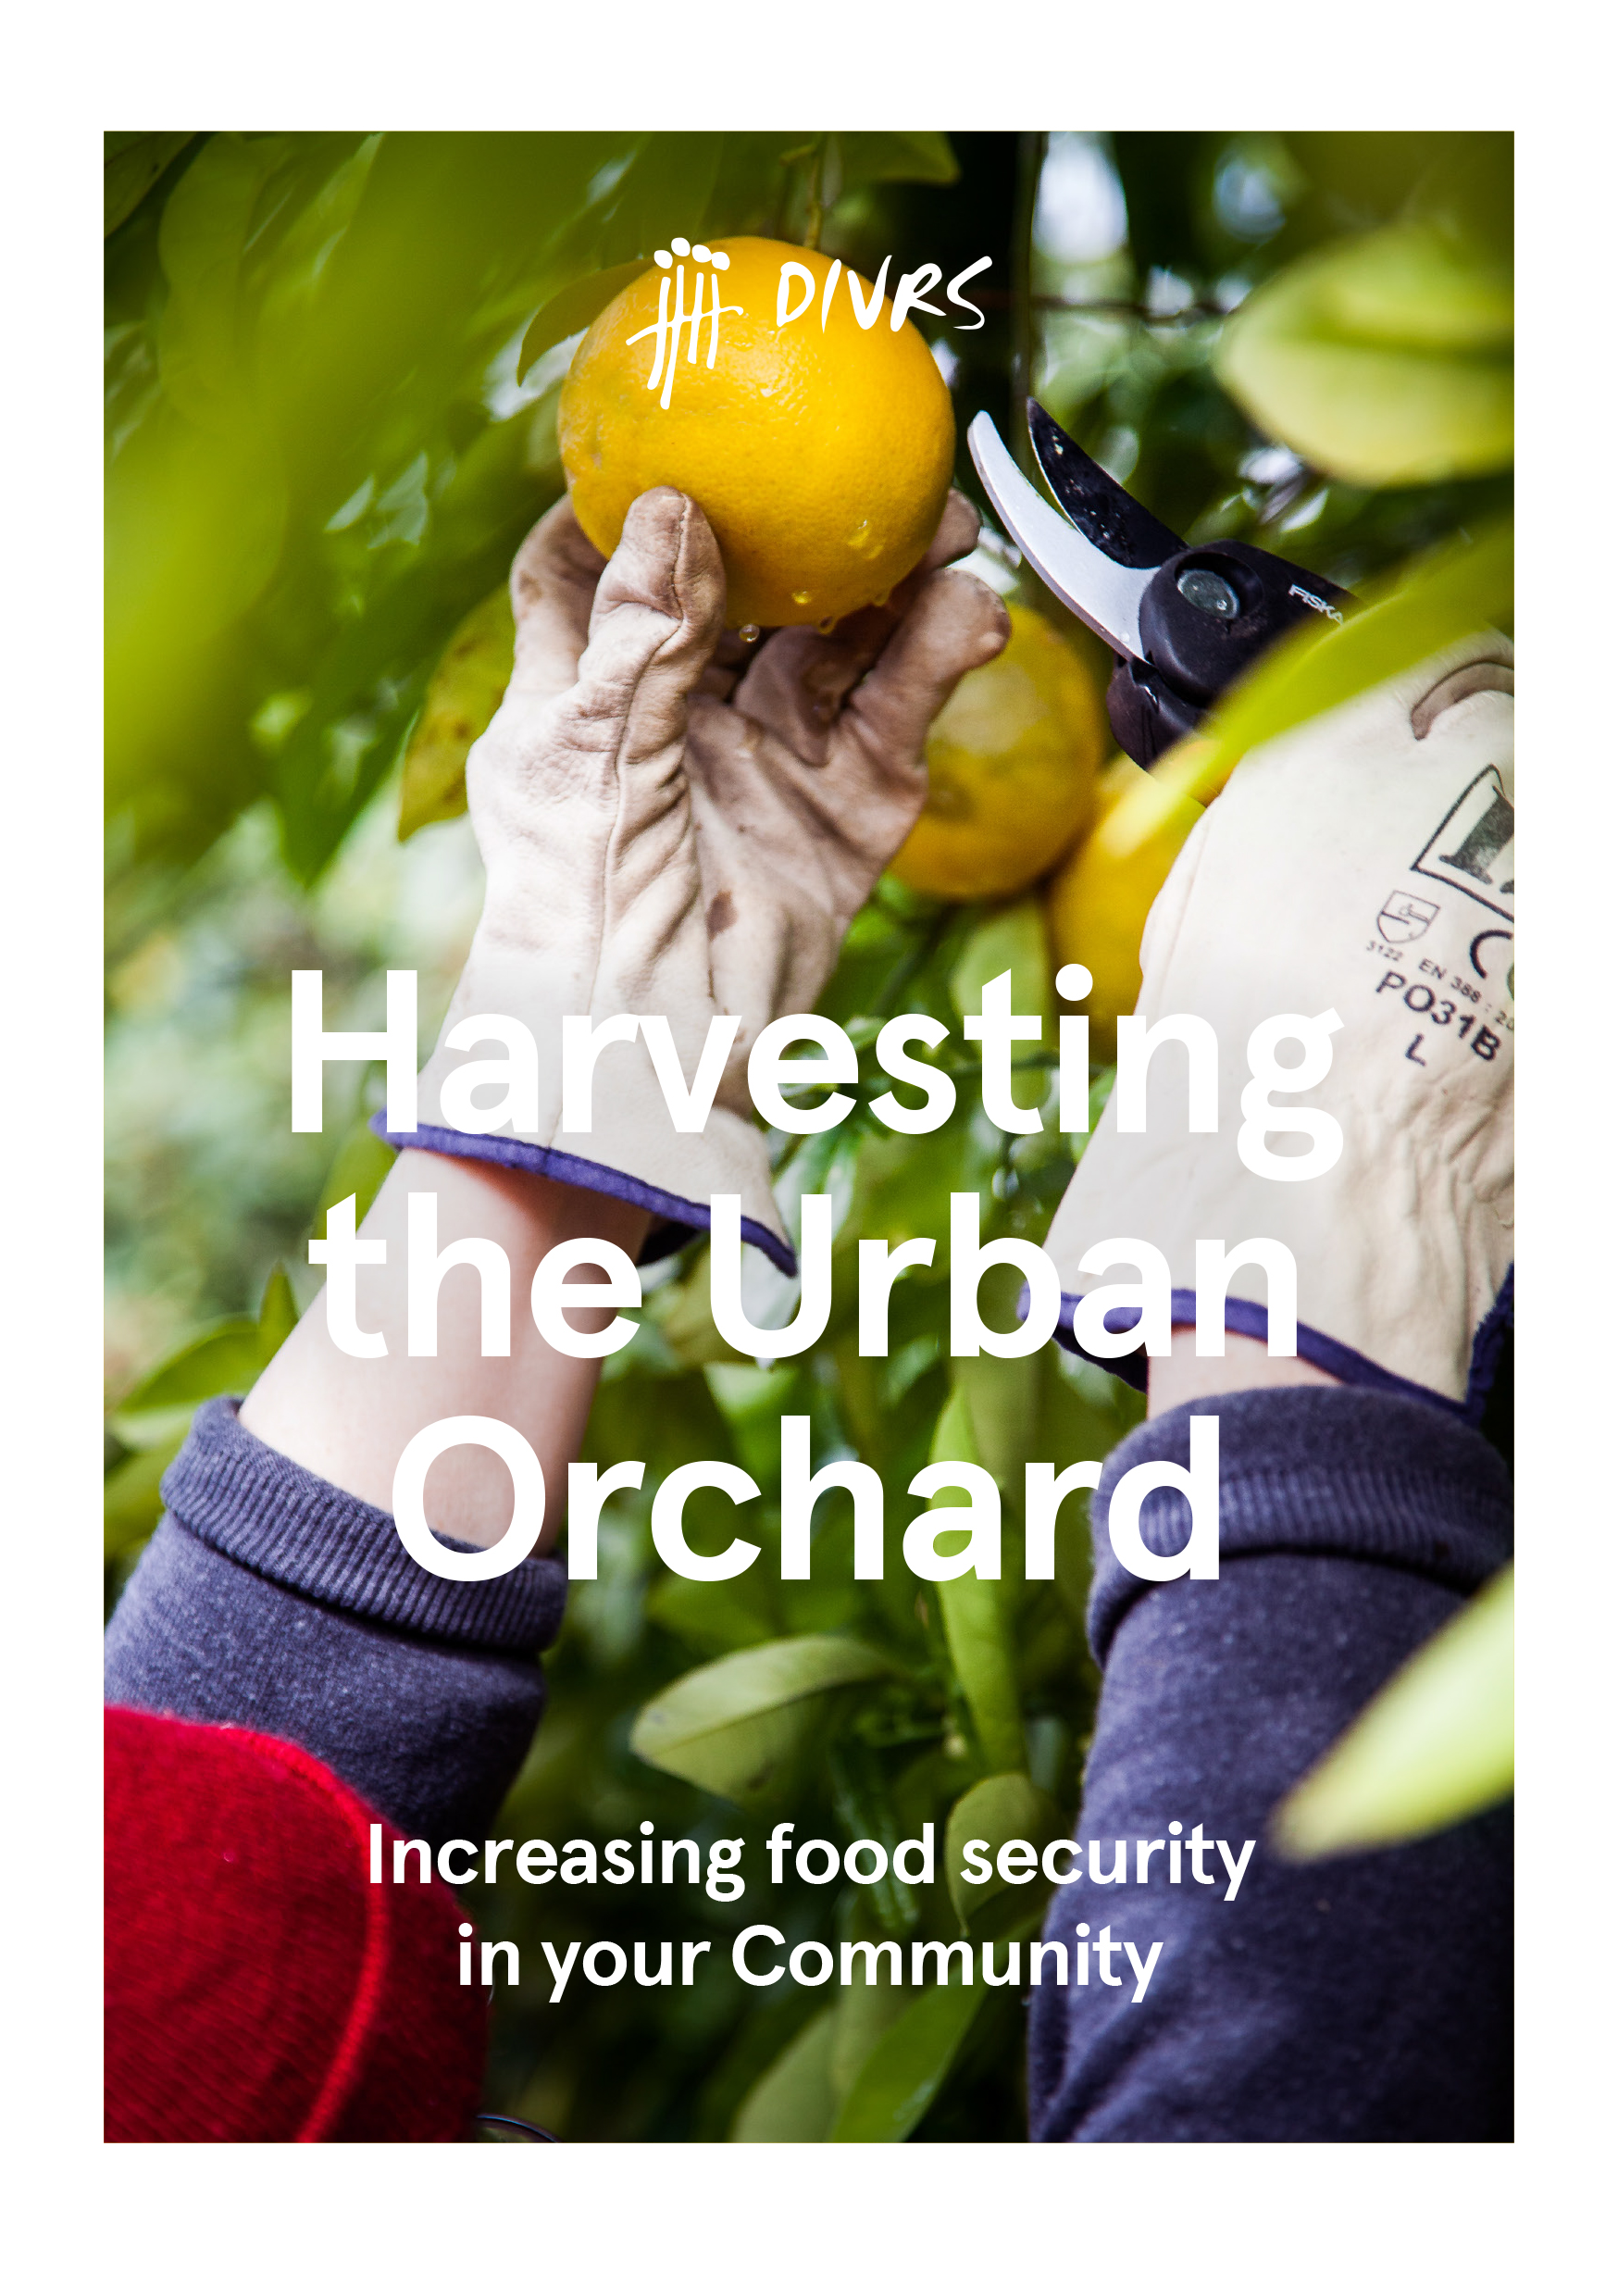 DIVRS Harvesting the Urban Orchard Cover.jpg